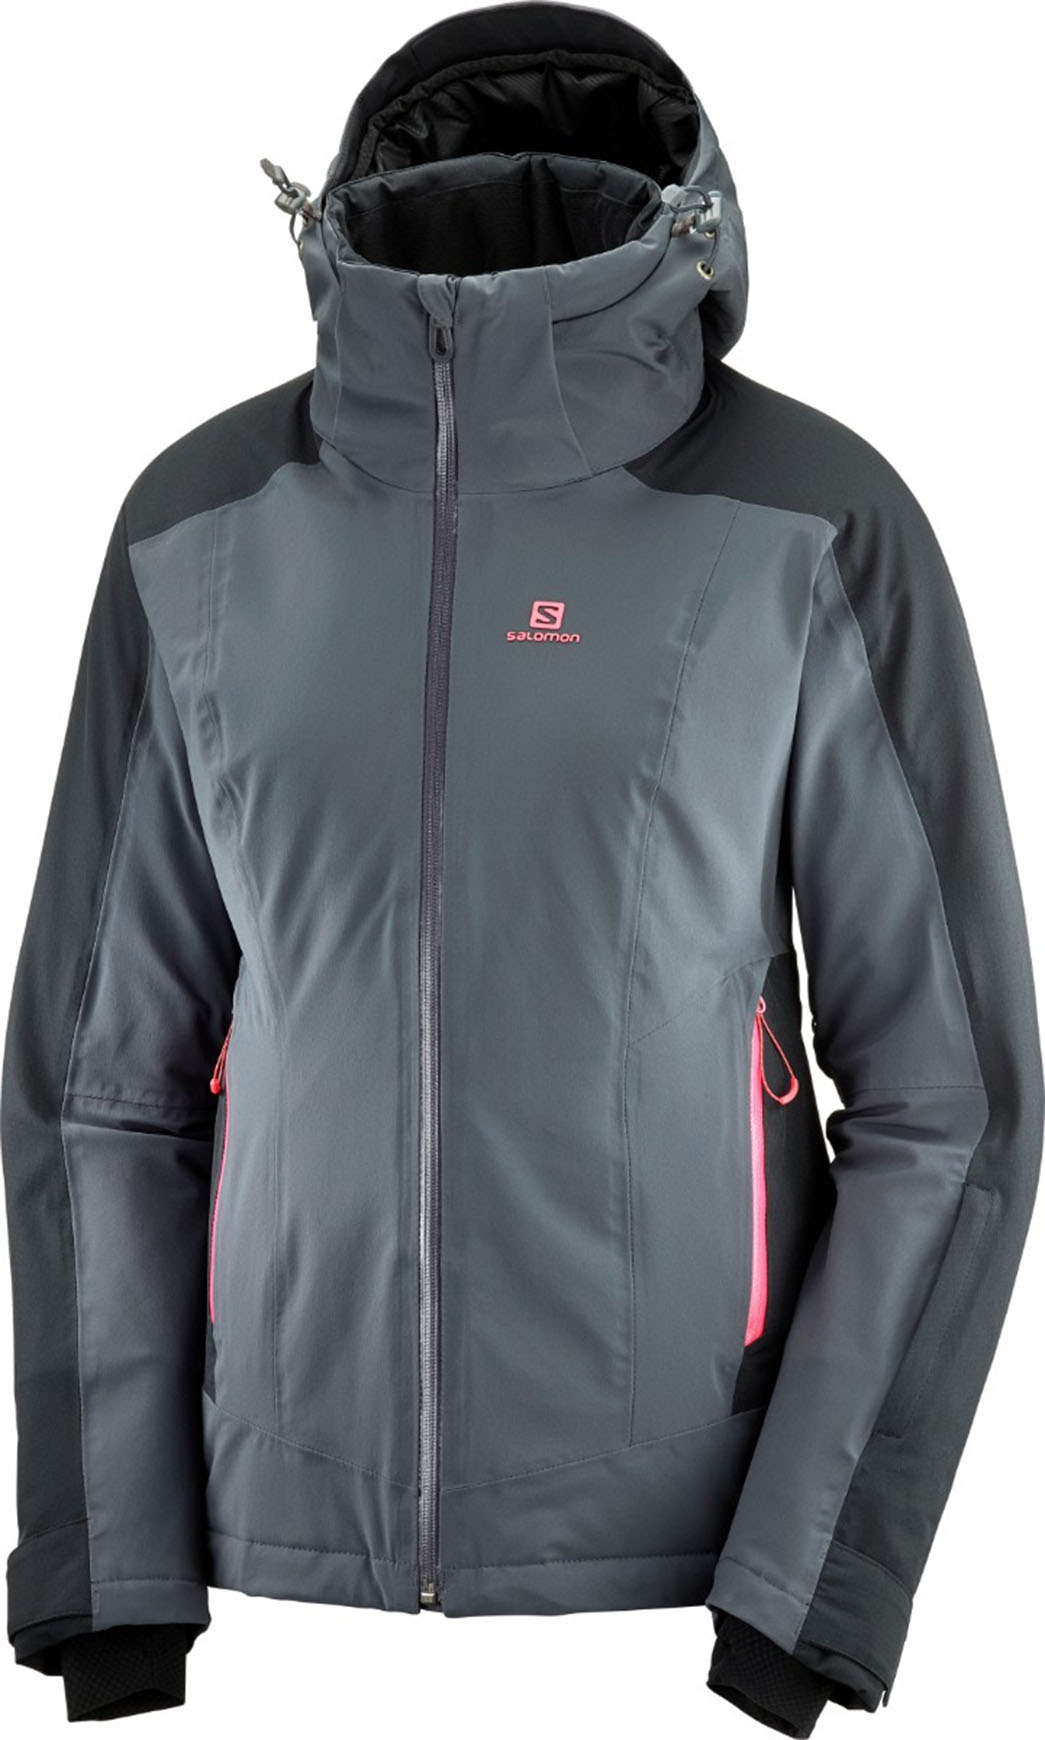 Salomon Brilliant Jacket W EbonyBlack : Skijacken : Snowleader L8C47